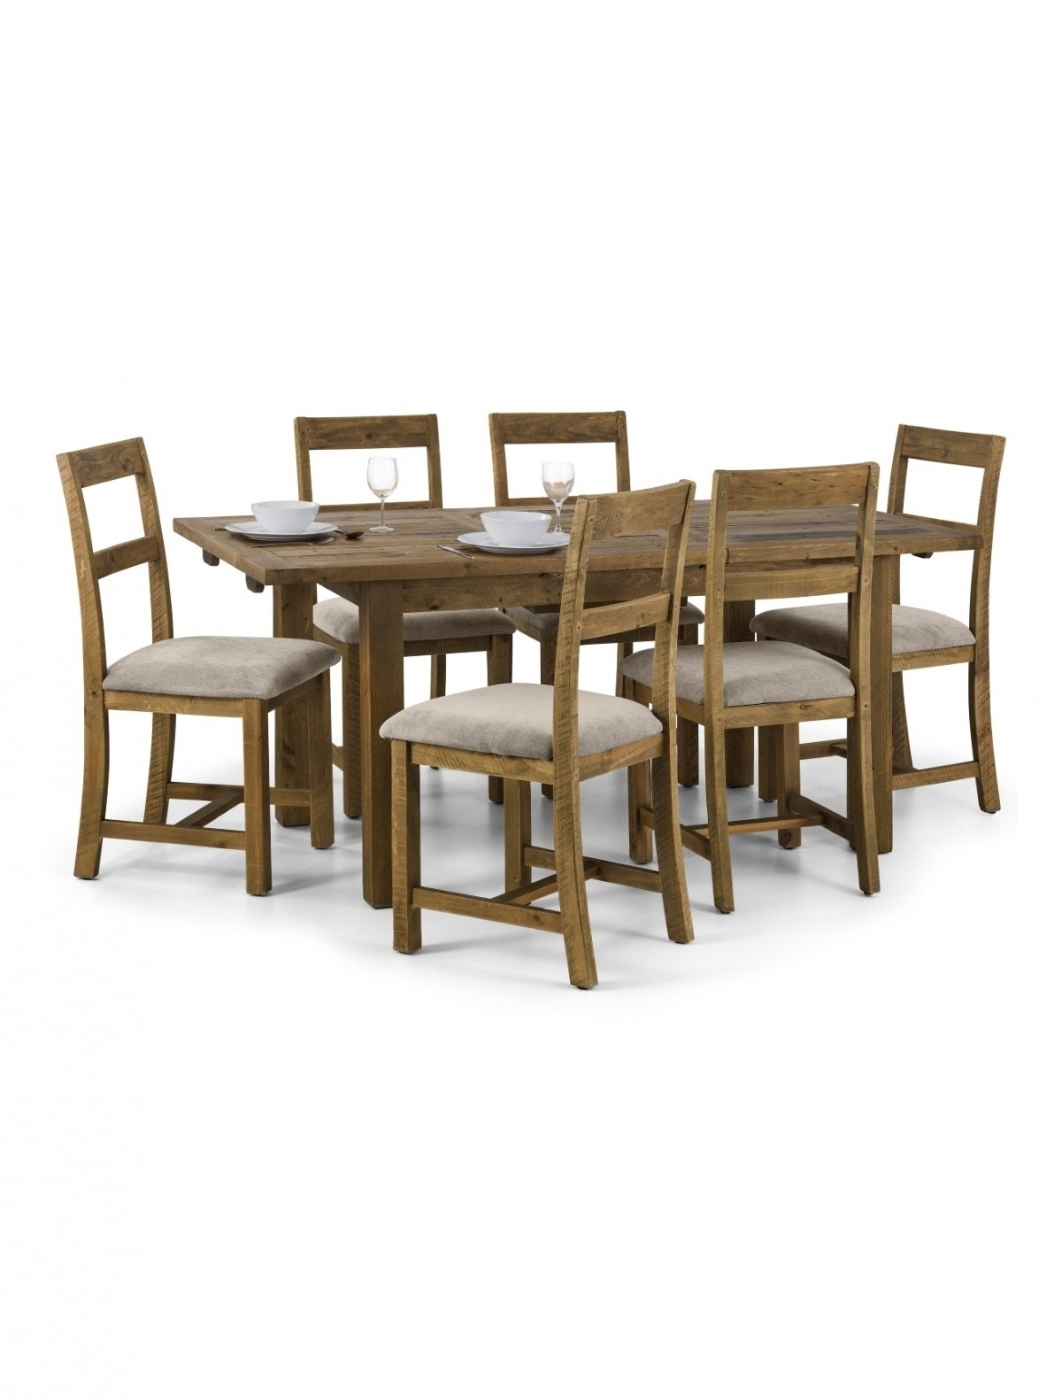 Extending Dining Sets In Preferred Aspen Extending Dining Table, 6 Dining Chairs In Solid Pine Asp017 (Gallery 17 of 25)